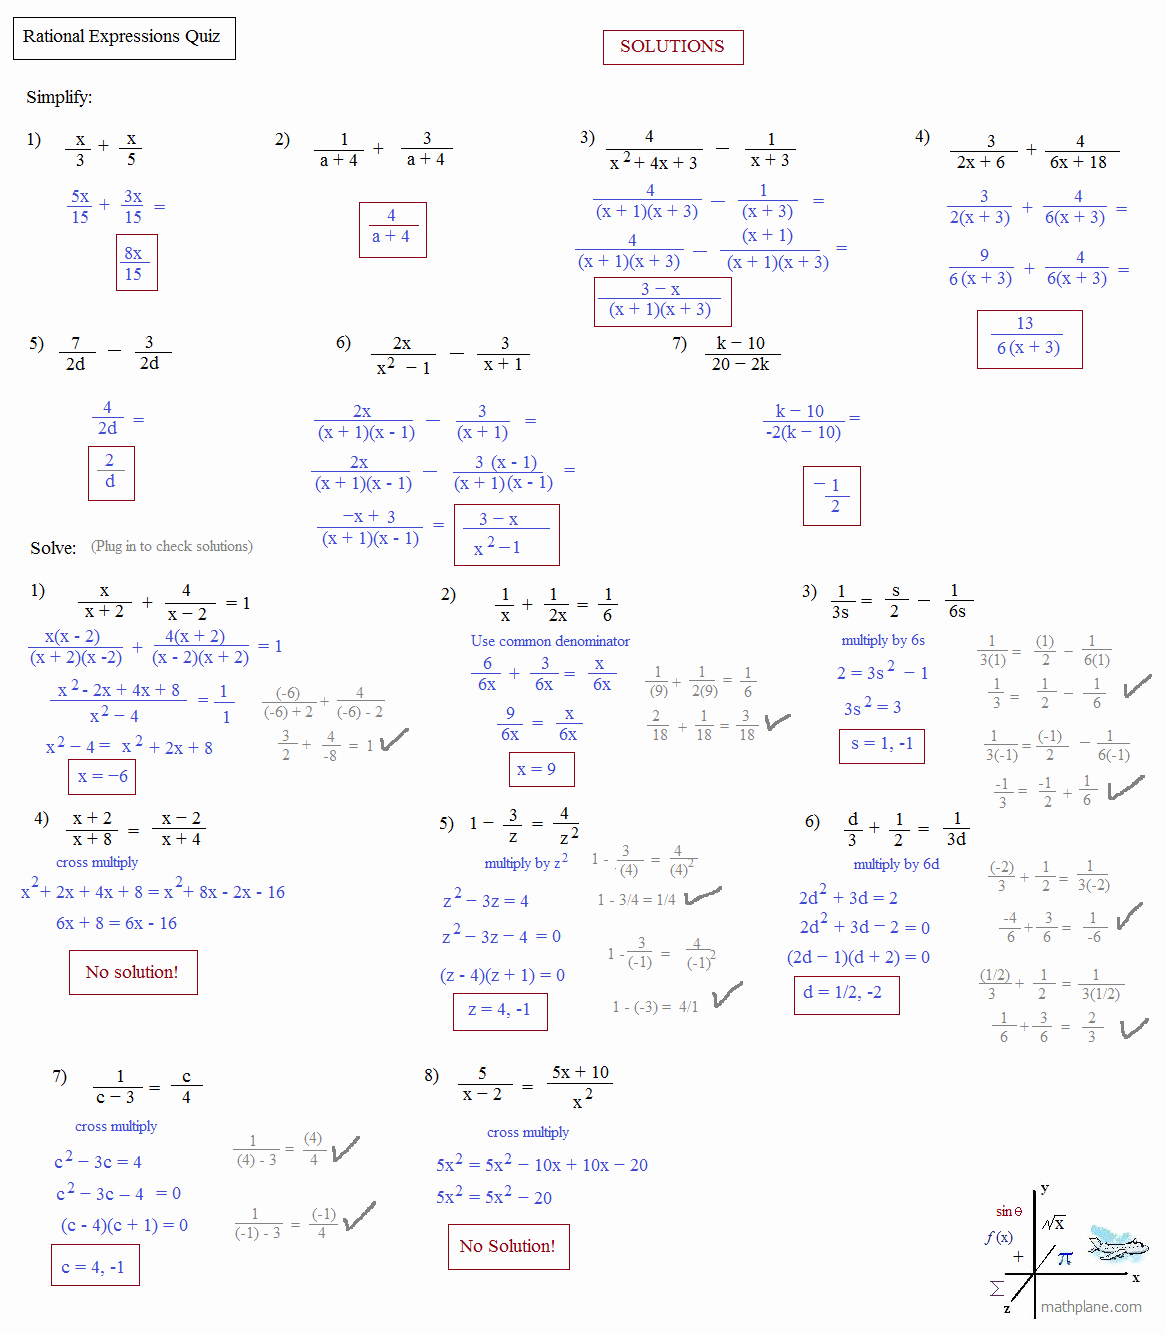 Rational Expressions Worksheet Answers Beautiful Math Plane solving Rational Equations